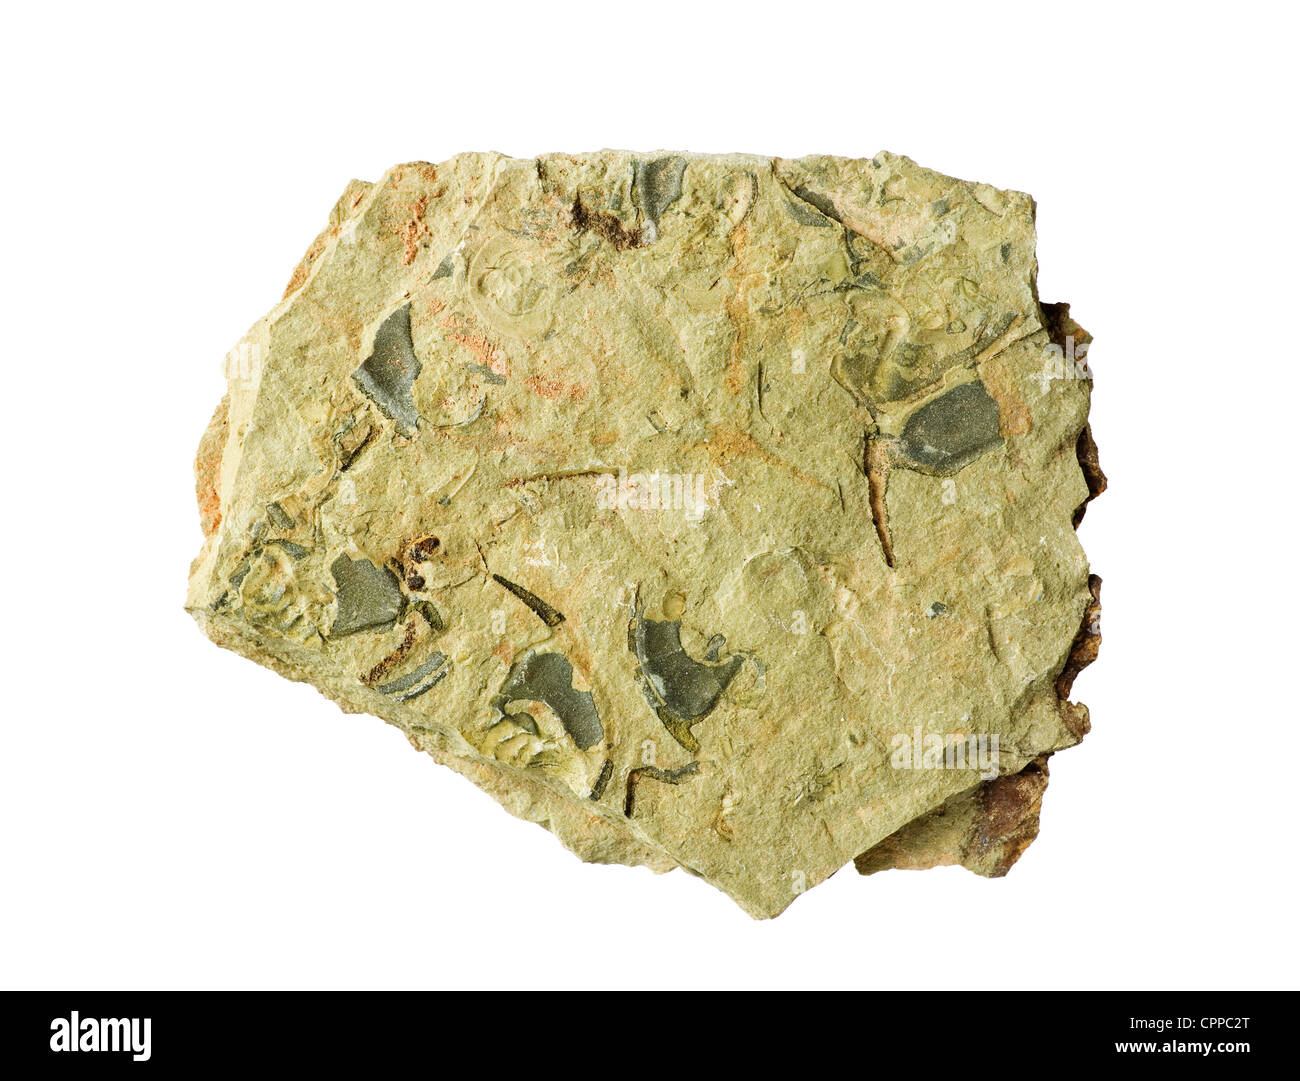 Cambrian shale rock with Ollenelid trilobite fossils in it isolated on white background - Stock Image